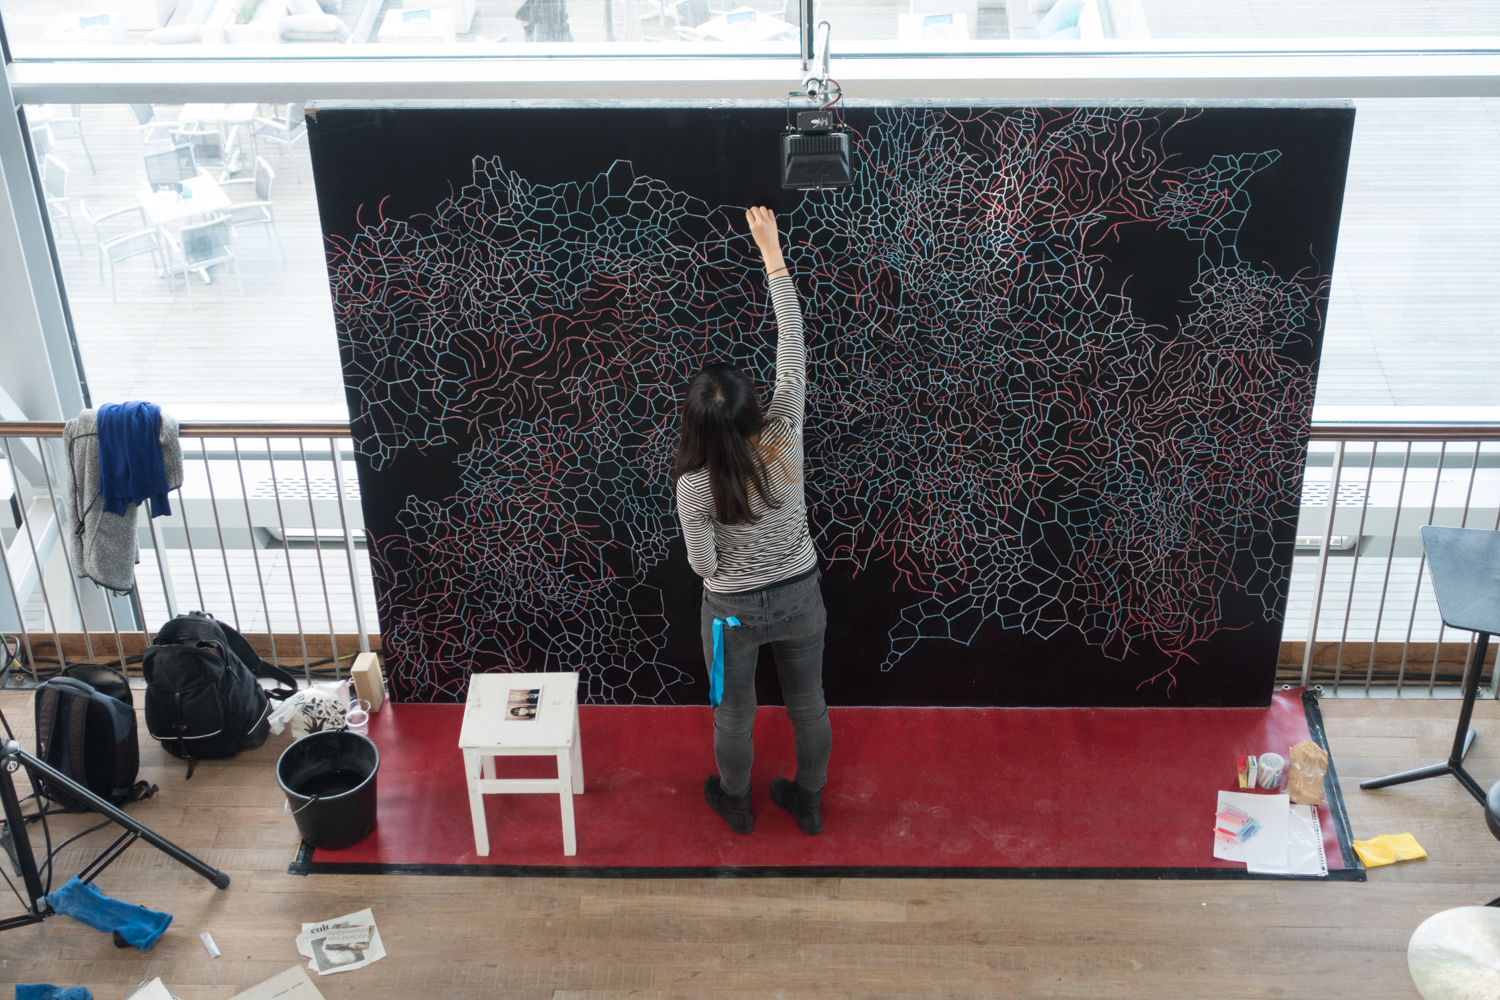 Artist Hanae Shimizu working on her drawing for Urbo Kune at the Muziekgebouw aan 't IJ. Photo by Canan Marasligil